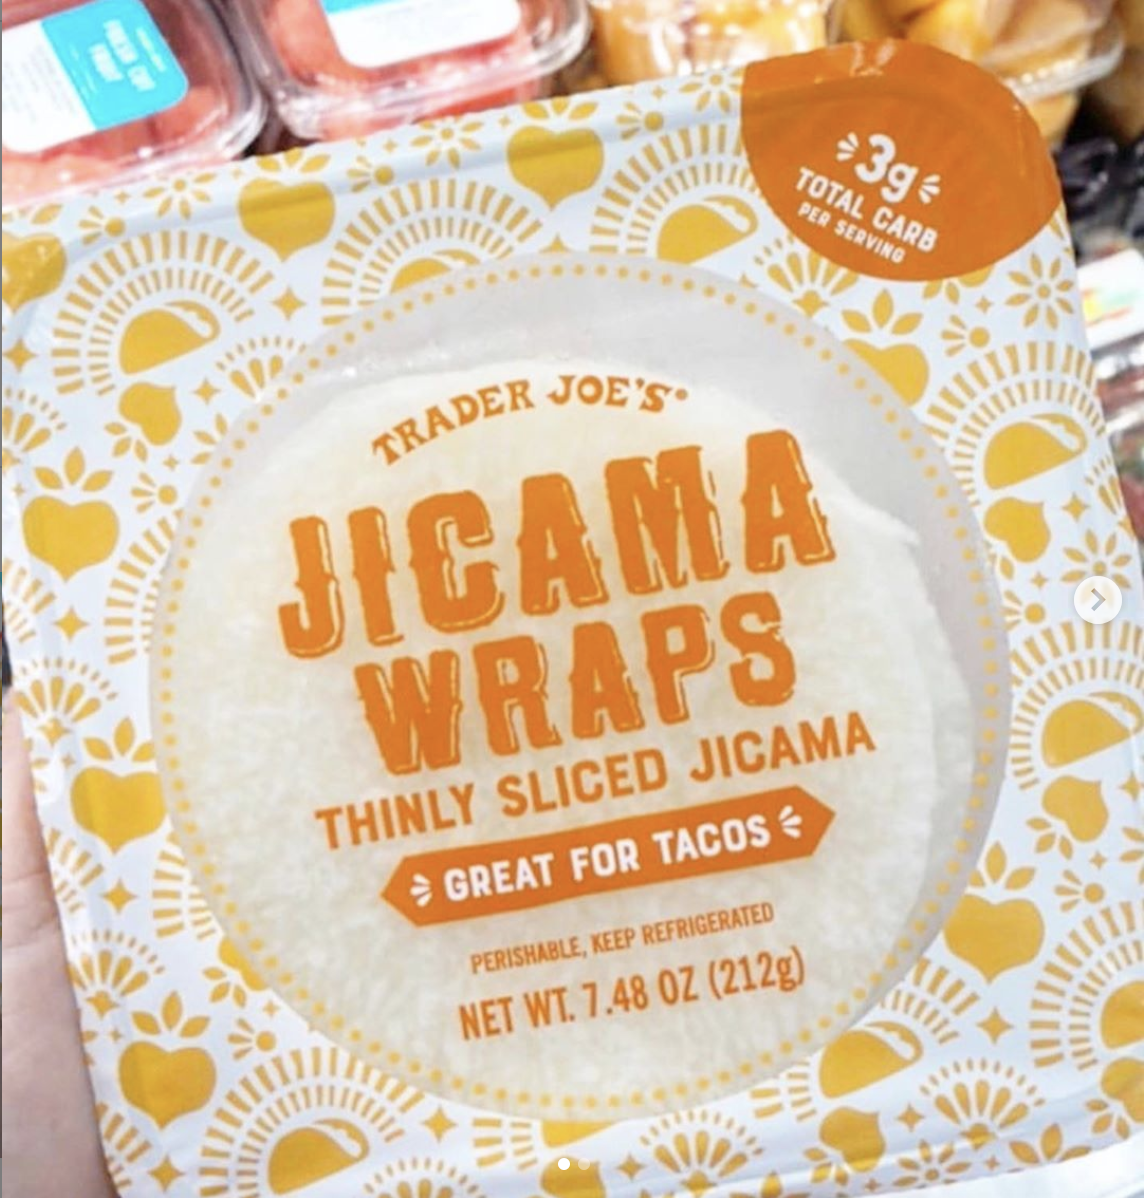 trader joe's jicama wraps